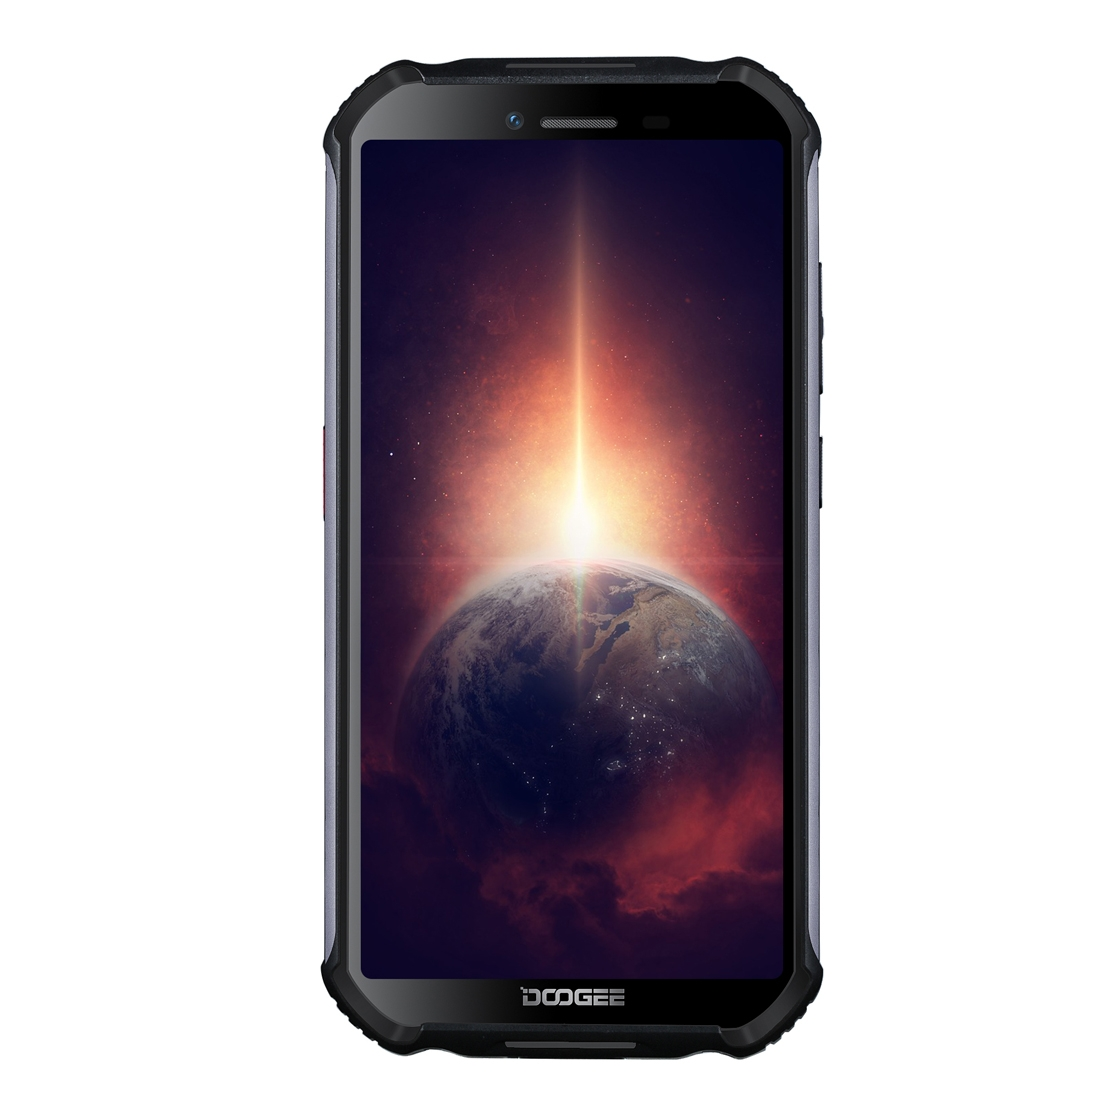 DOOGEE S40 5.45 Inch IP68 IP69K Waterproof NFC Android 10 4650mAh 4GB RAM 64GB ROM MTK6762D A25 Octa Core Cortex-A53 up to 1.8GHz 4G Smartphone (Black)